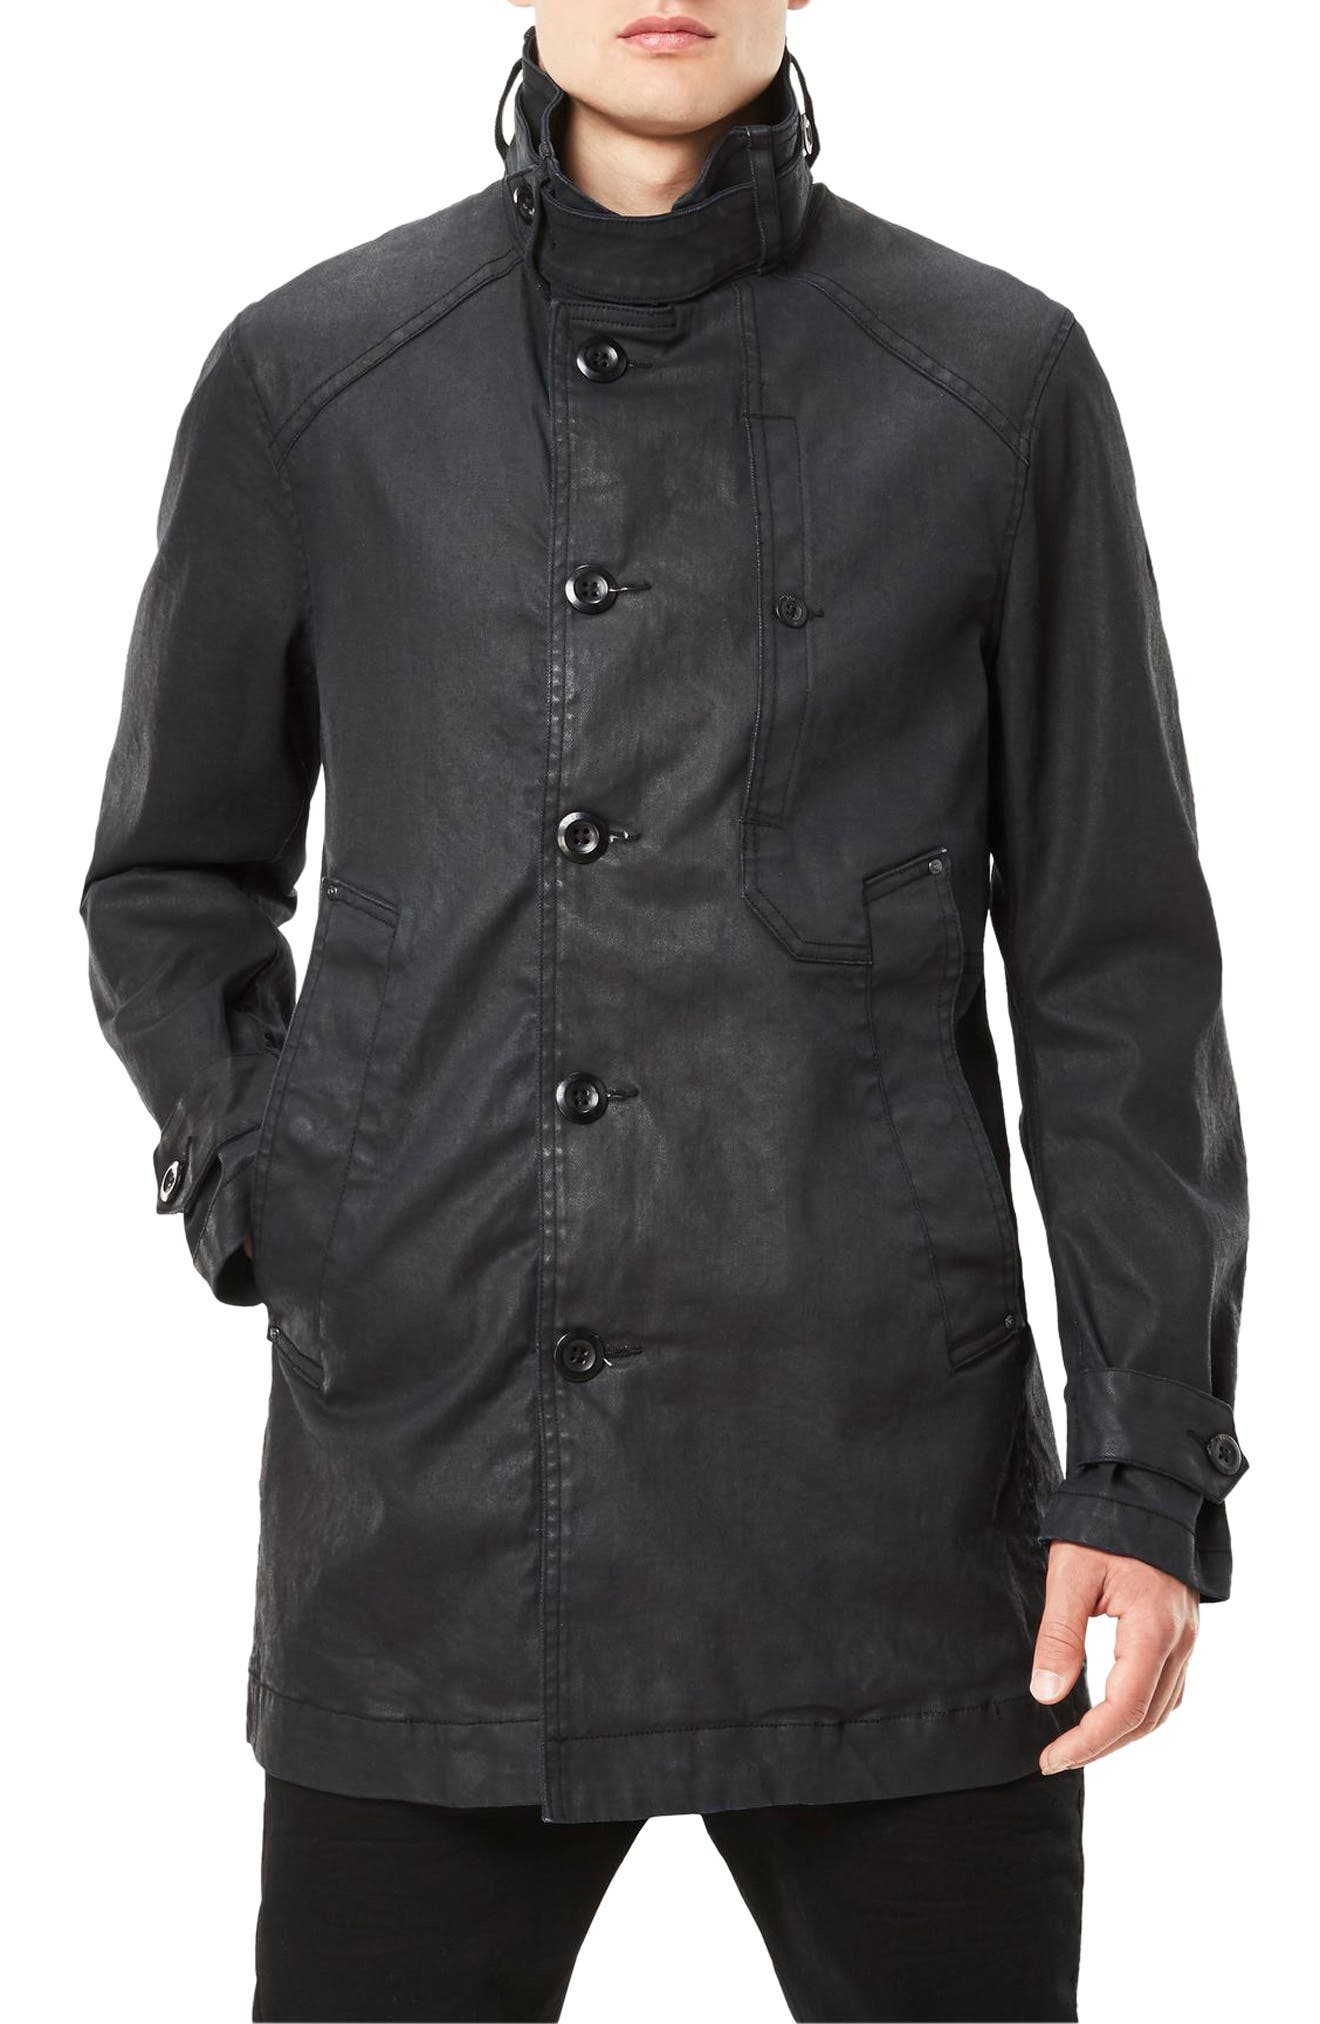 Garber Denim Trench Coat,                             Main thumbnail 1, color,                             Dark Aged